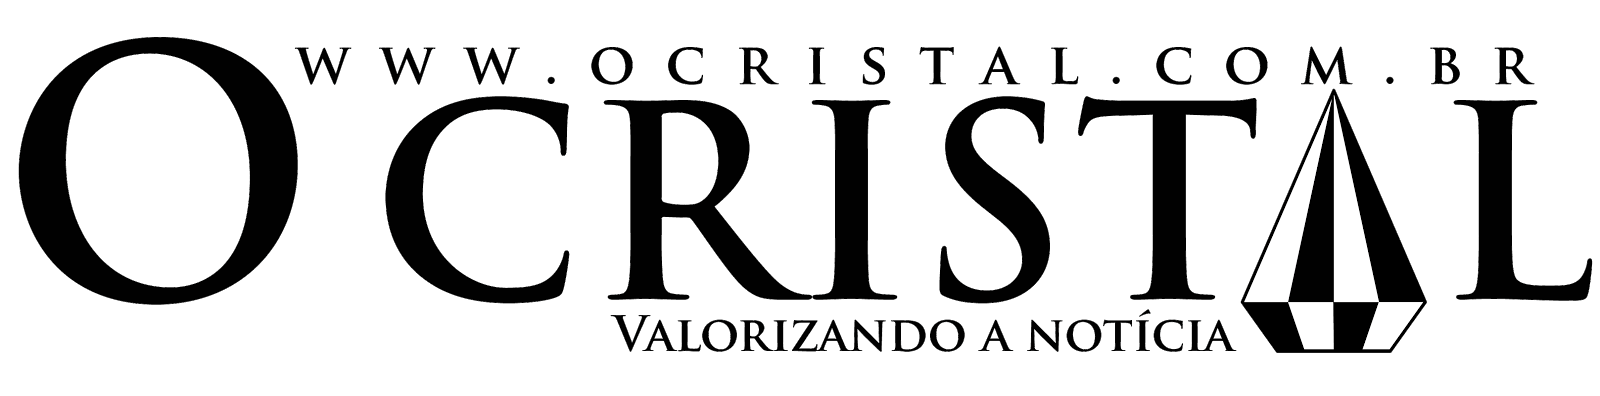 O Cristal  |  Valorizando a Notícia